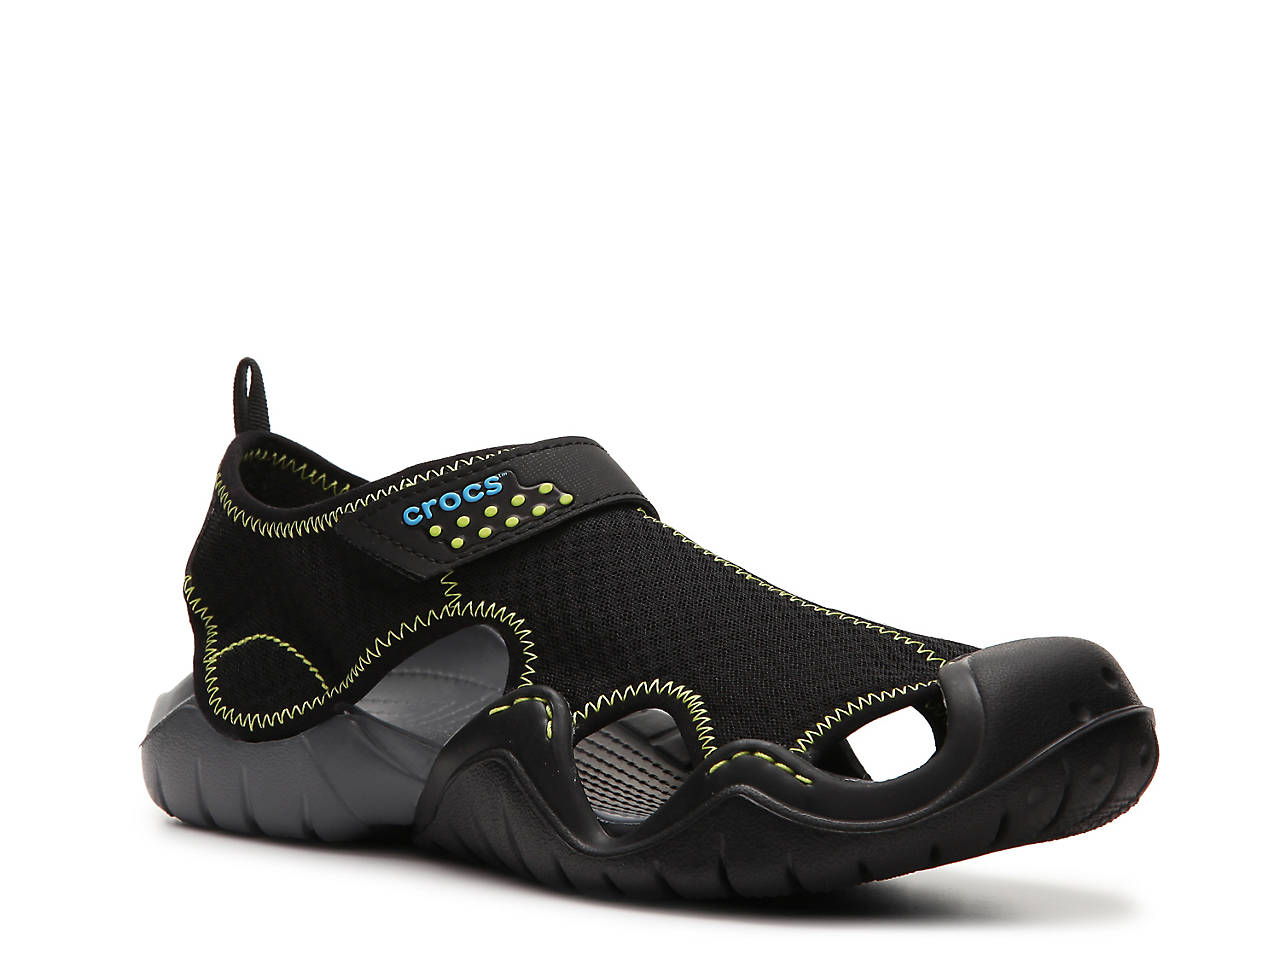 ca99262dc45bc3 Crocs Swiftwater Sandal Men s Shoes